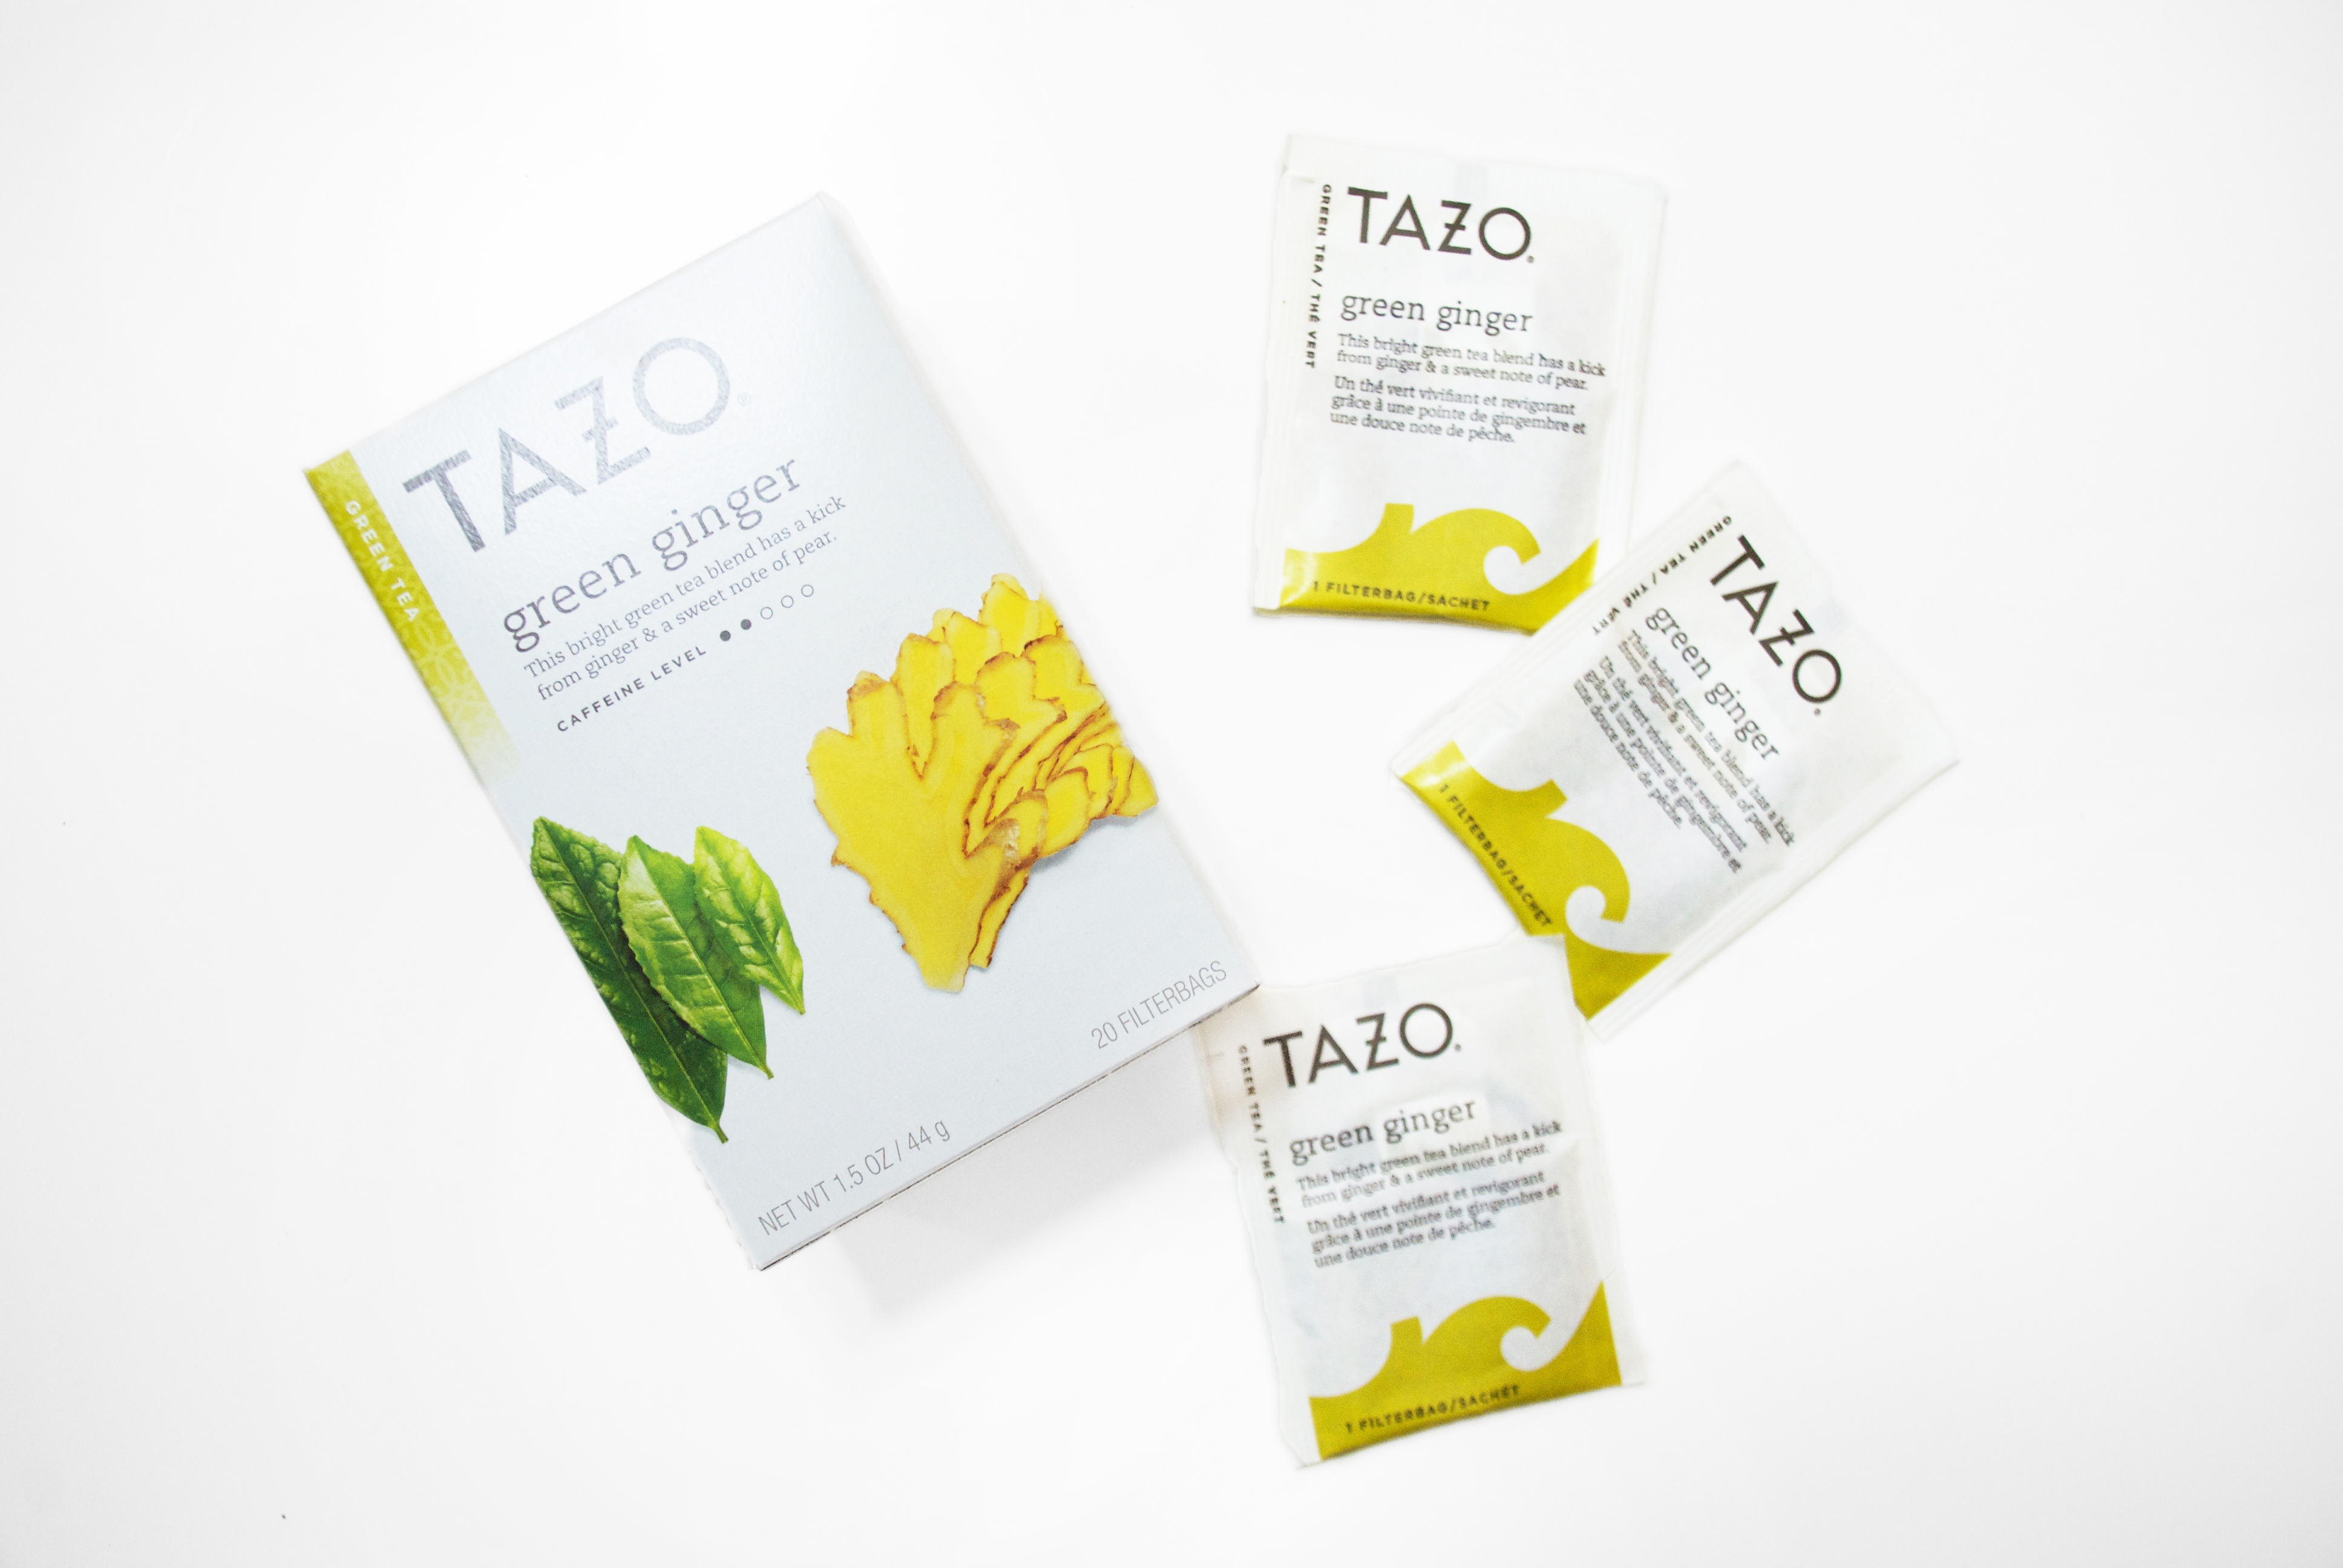 TAZO green ginger tea packets with box